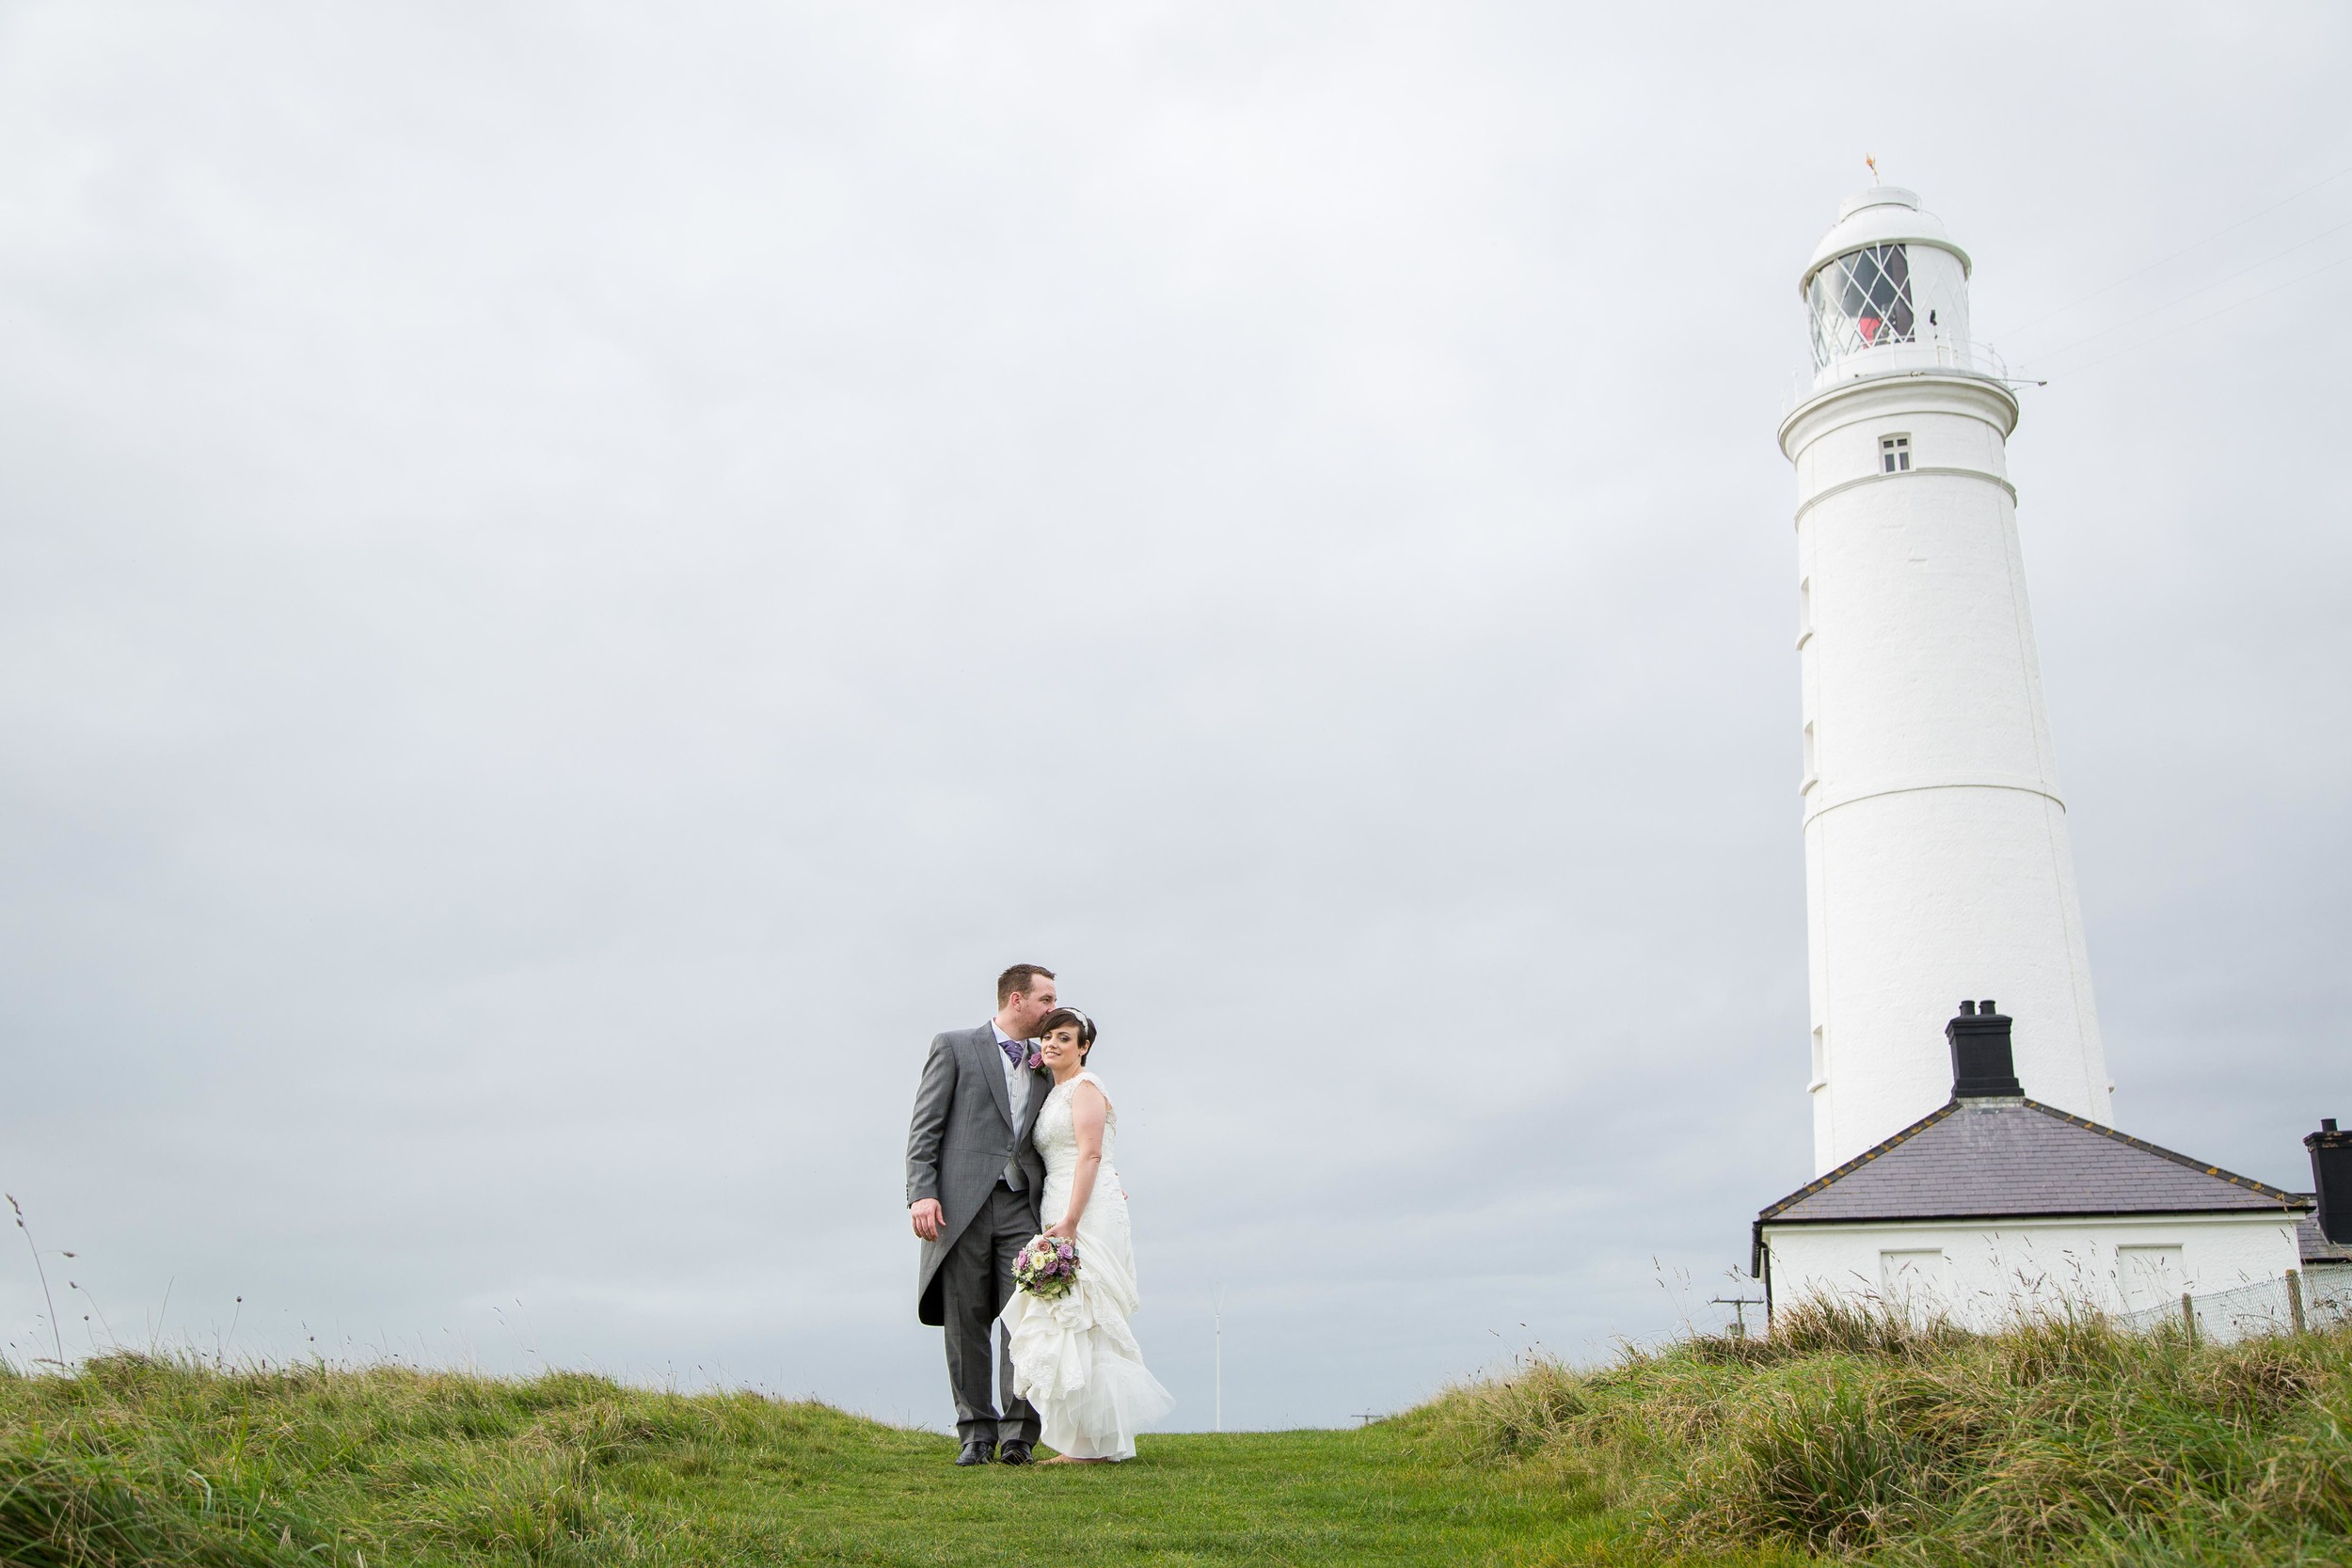 How about this for a location! My first lighthouse venue which was for Amy & Gareth's wedding on Thursday 29th October. They wanted a unique venue and Nashpoint Lighthouse in Wales certainly met the criteria.